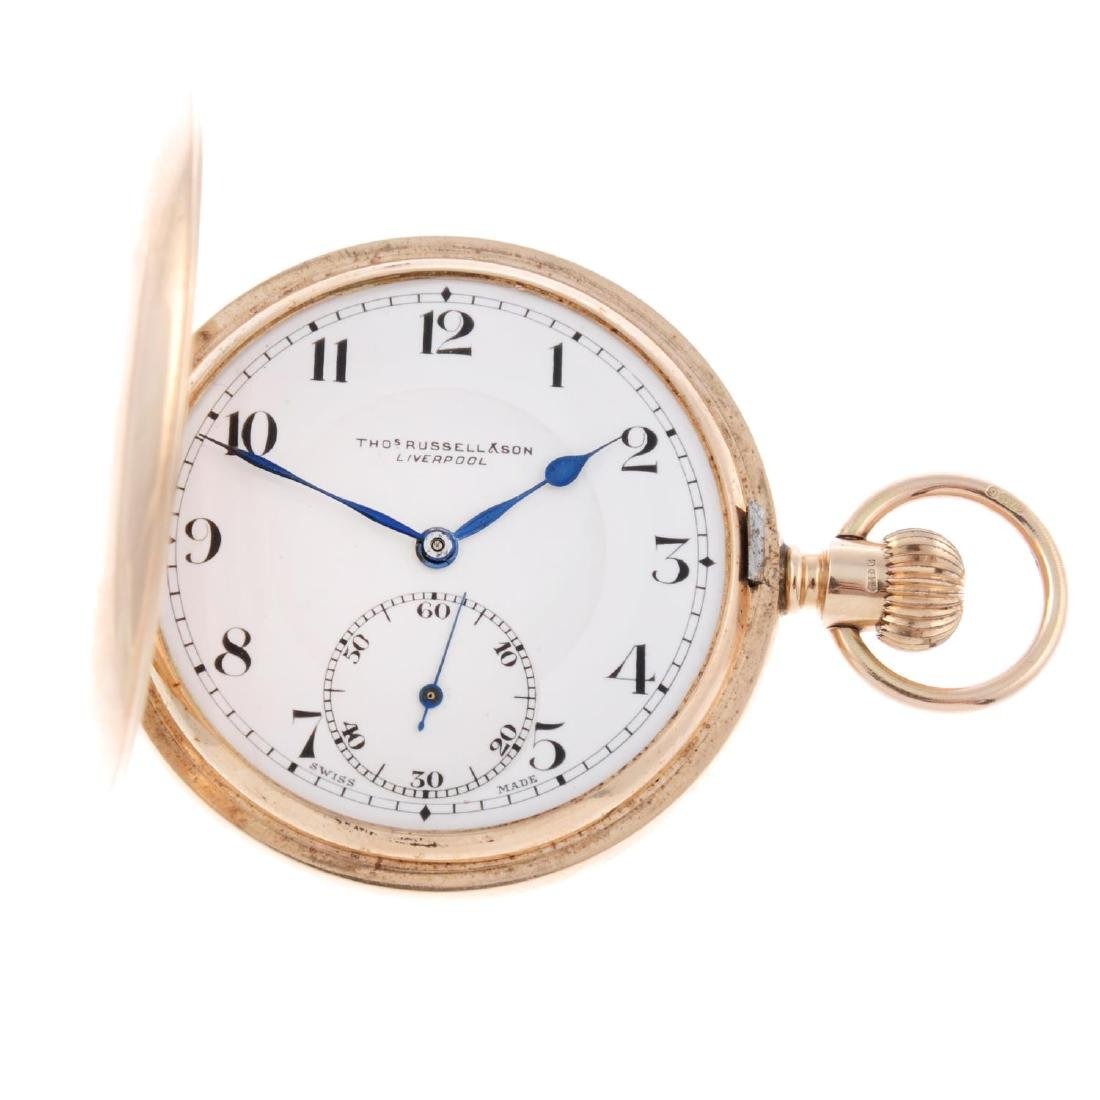 A full hunter pocket watch by T. Russell & Son. 9ct